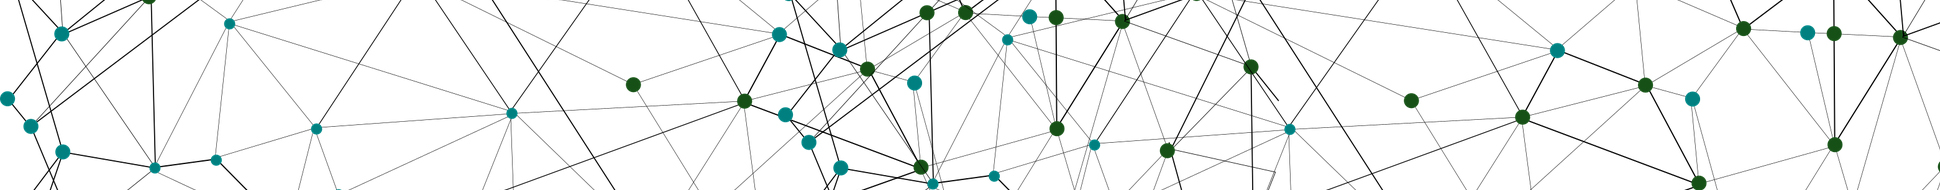 abstract image of networked nodes